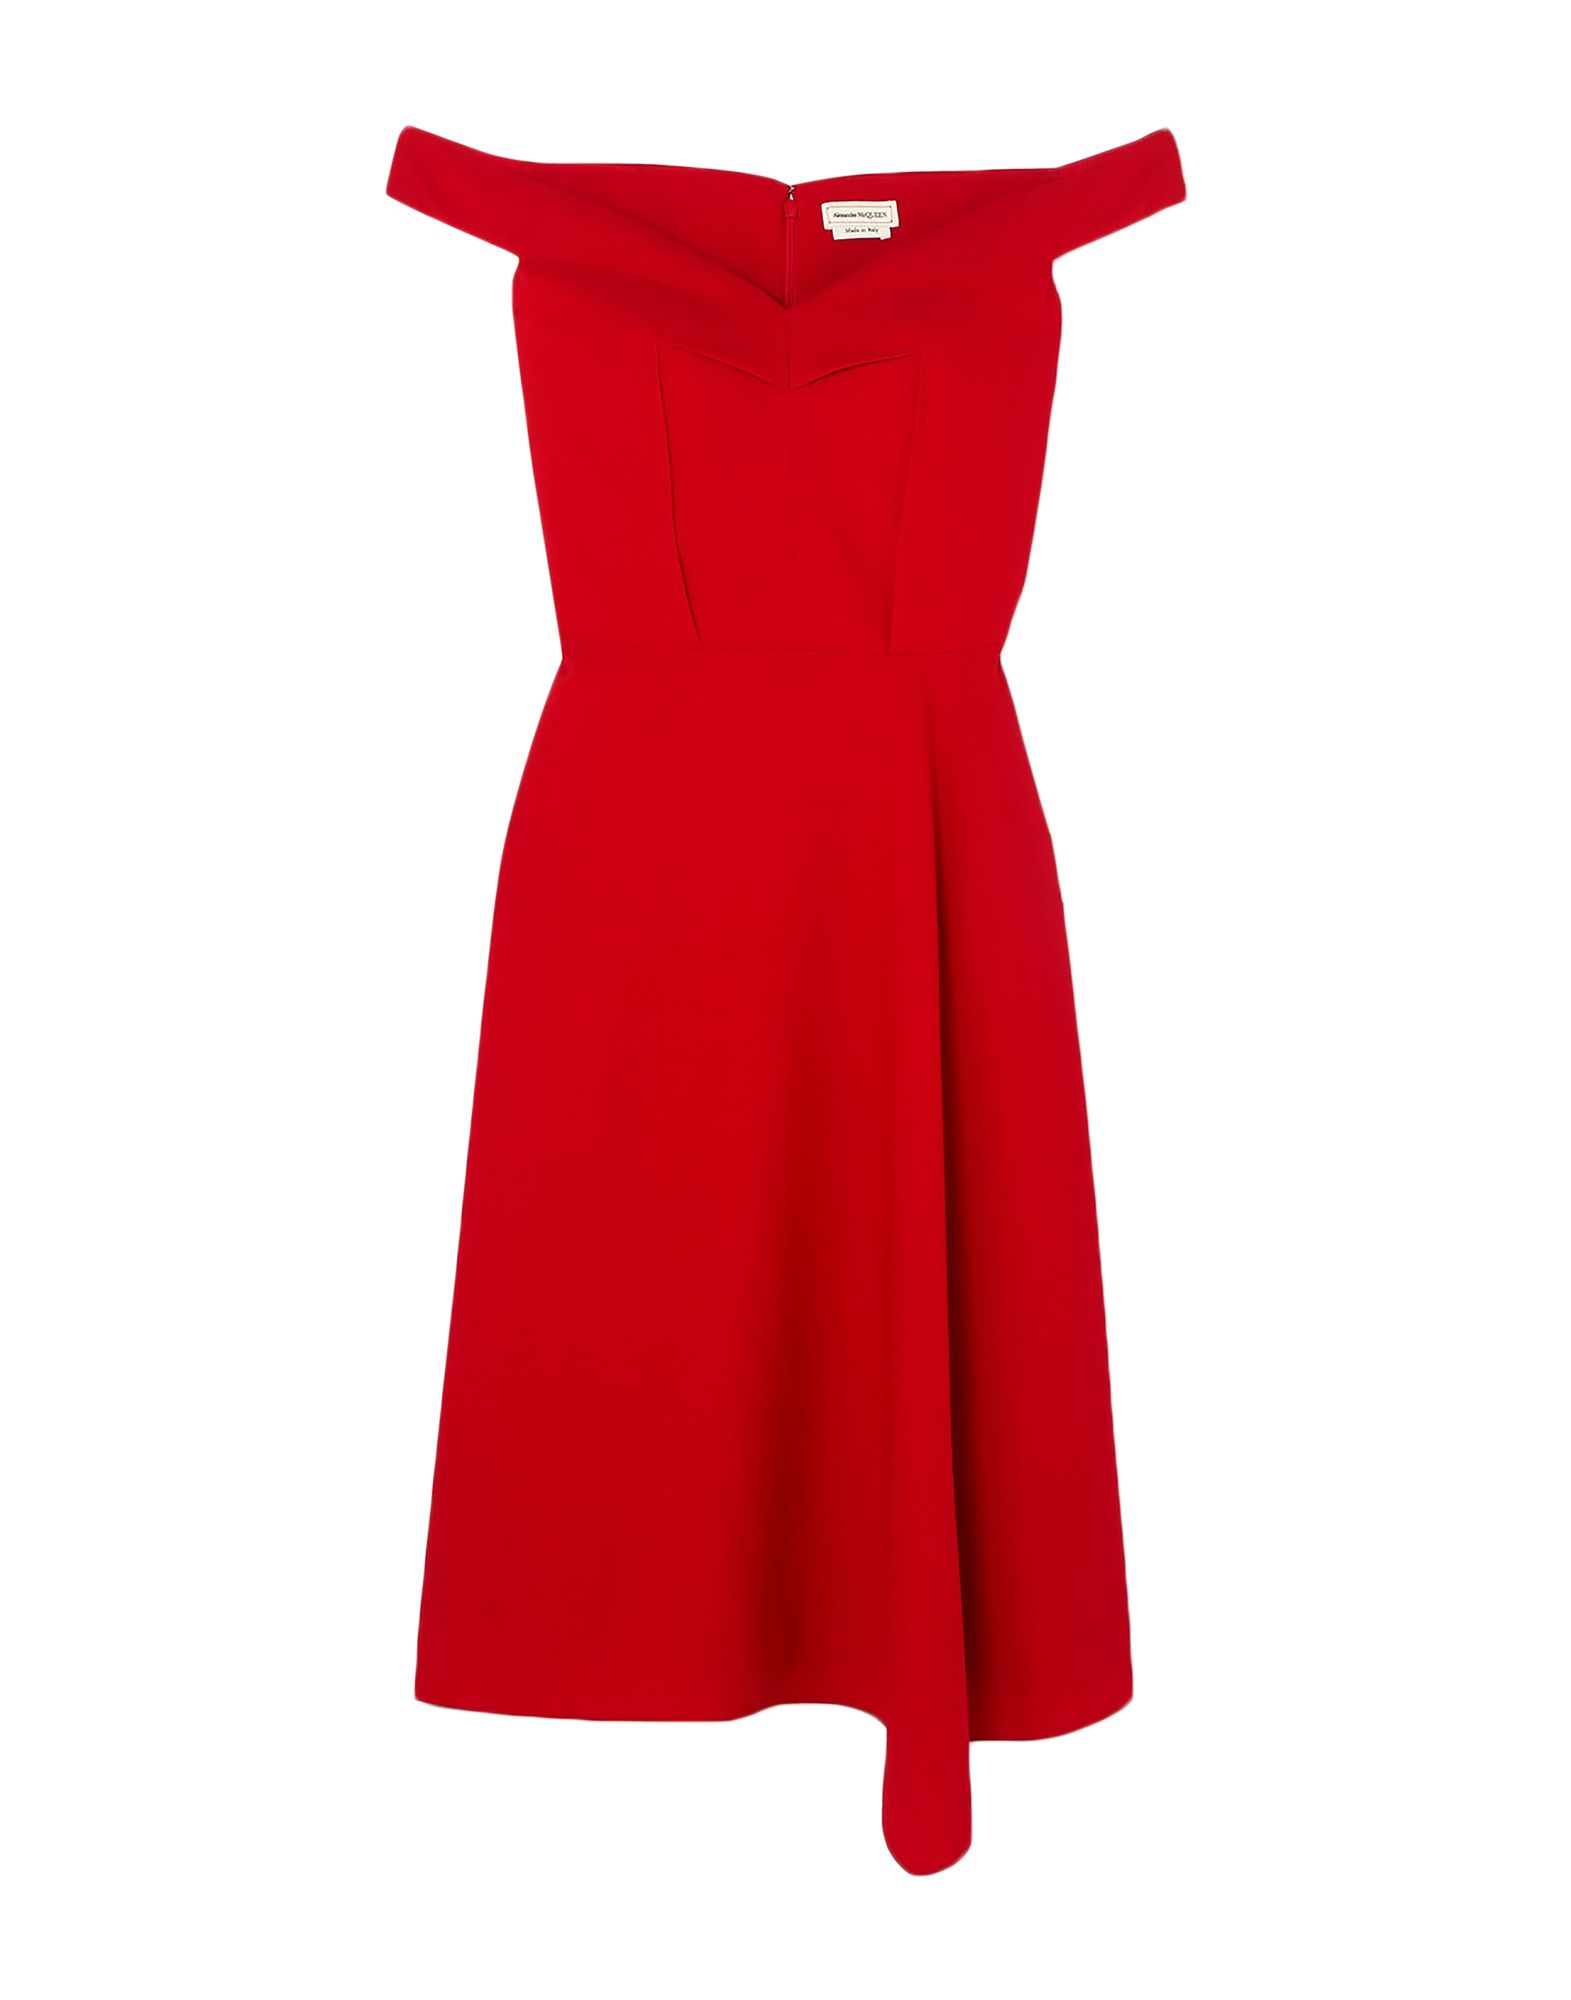 ALEXANDER MCQUEEN Short dresses. crepe, no appliqués, solid color, v-neck, sleeveless, no pockets, rear closure, fully lined. 96% Wool, 3% Polyamide, 1% Elastane